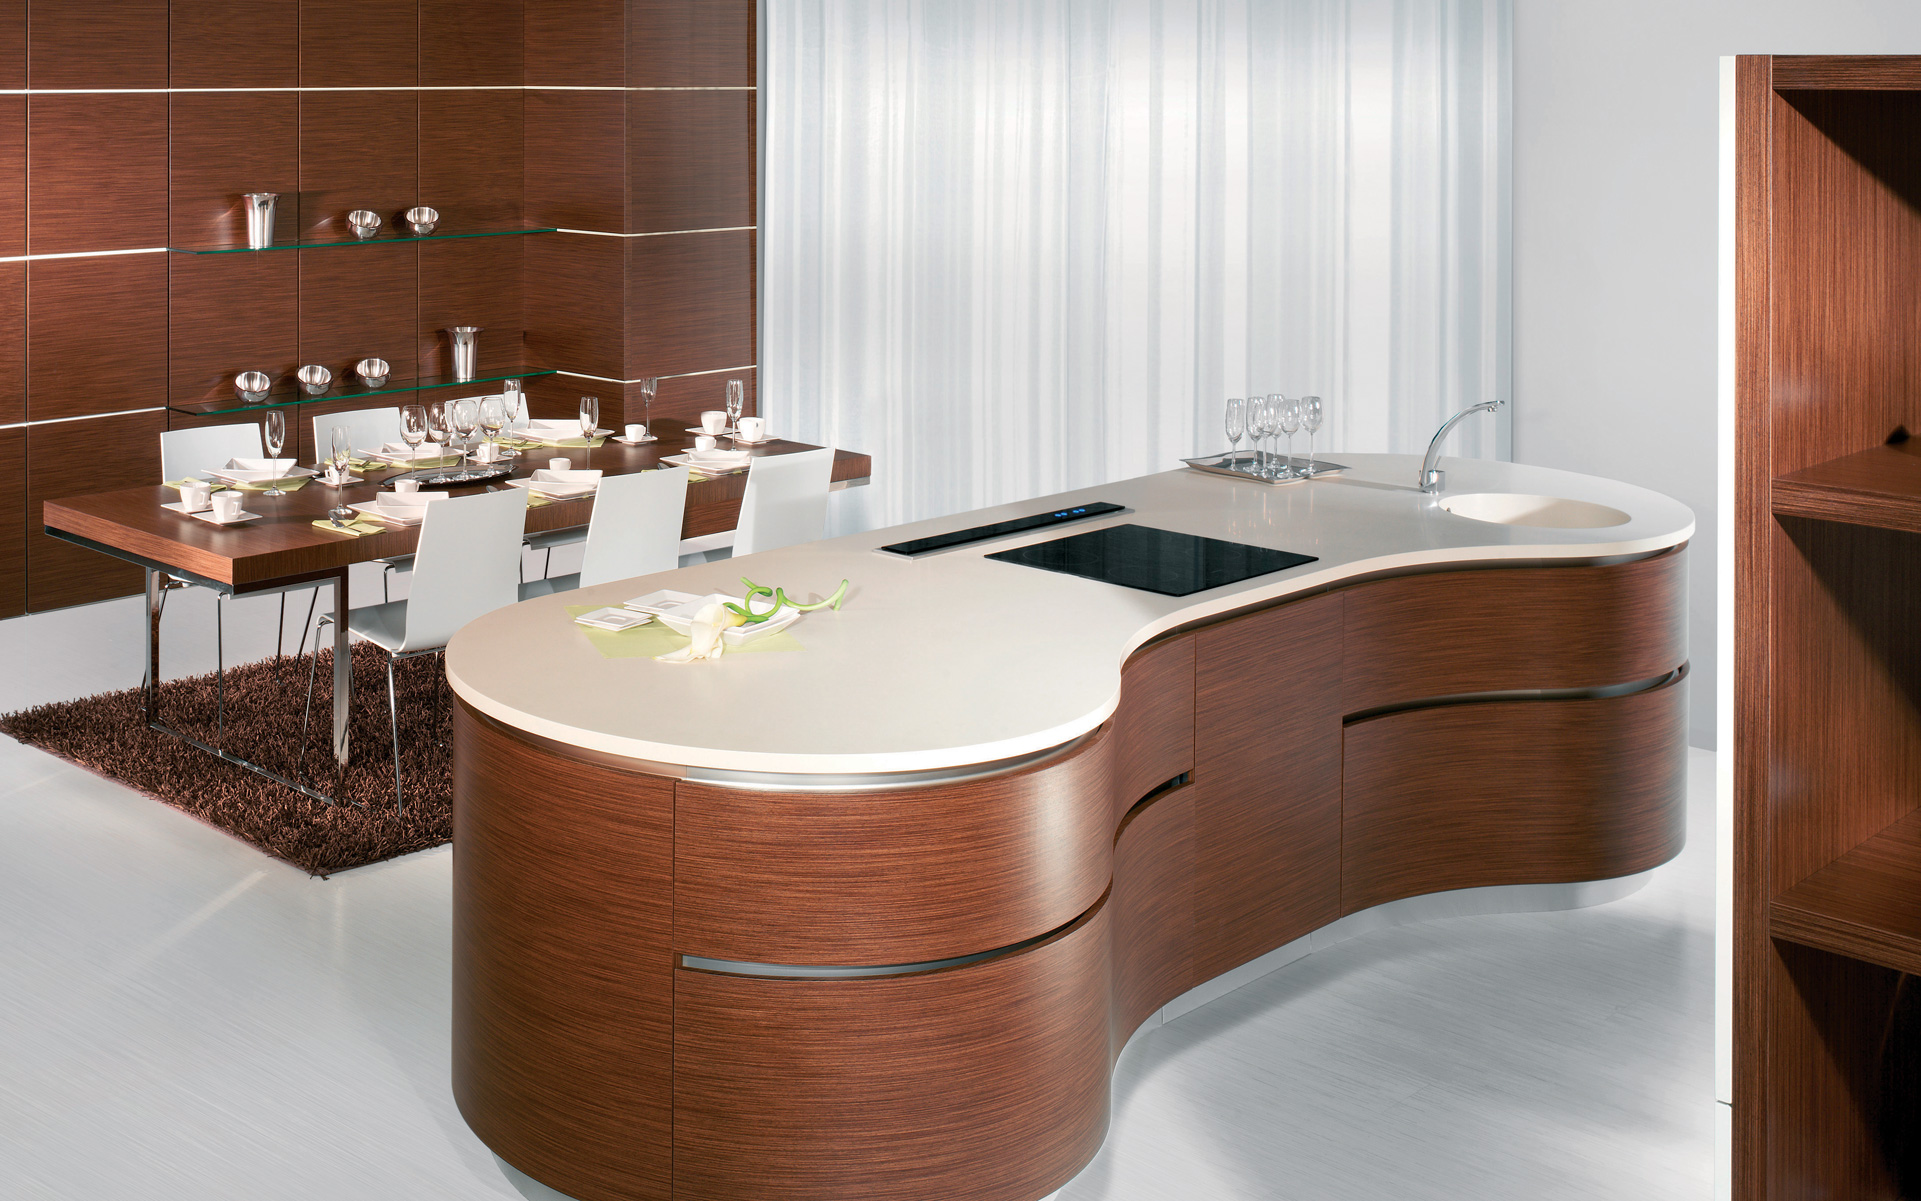 ELITE kitchen